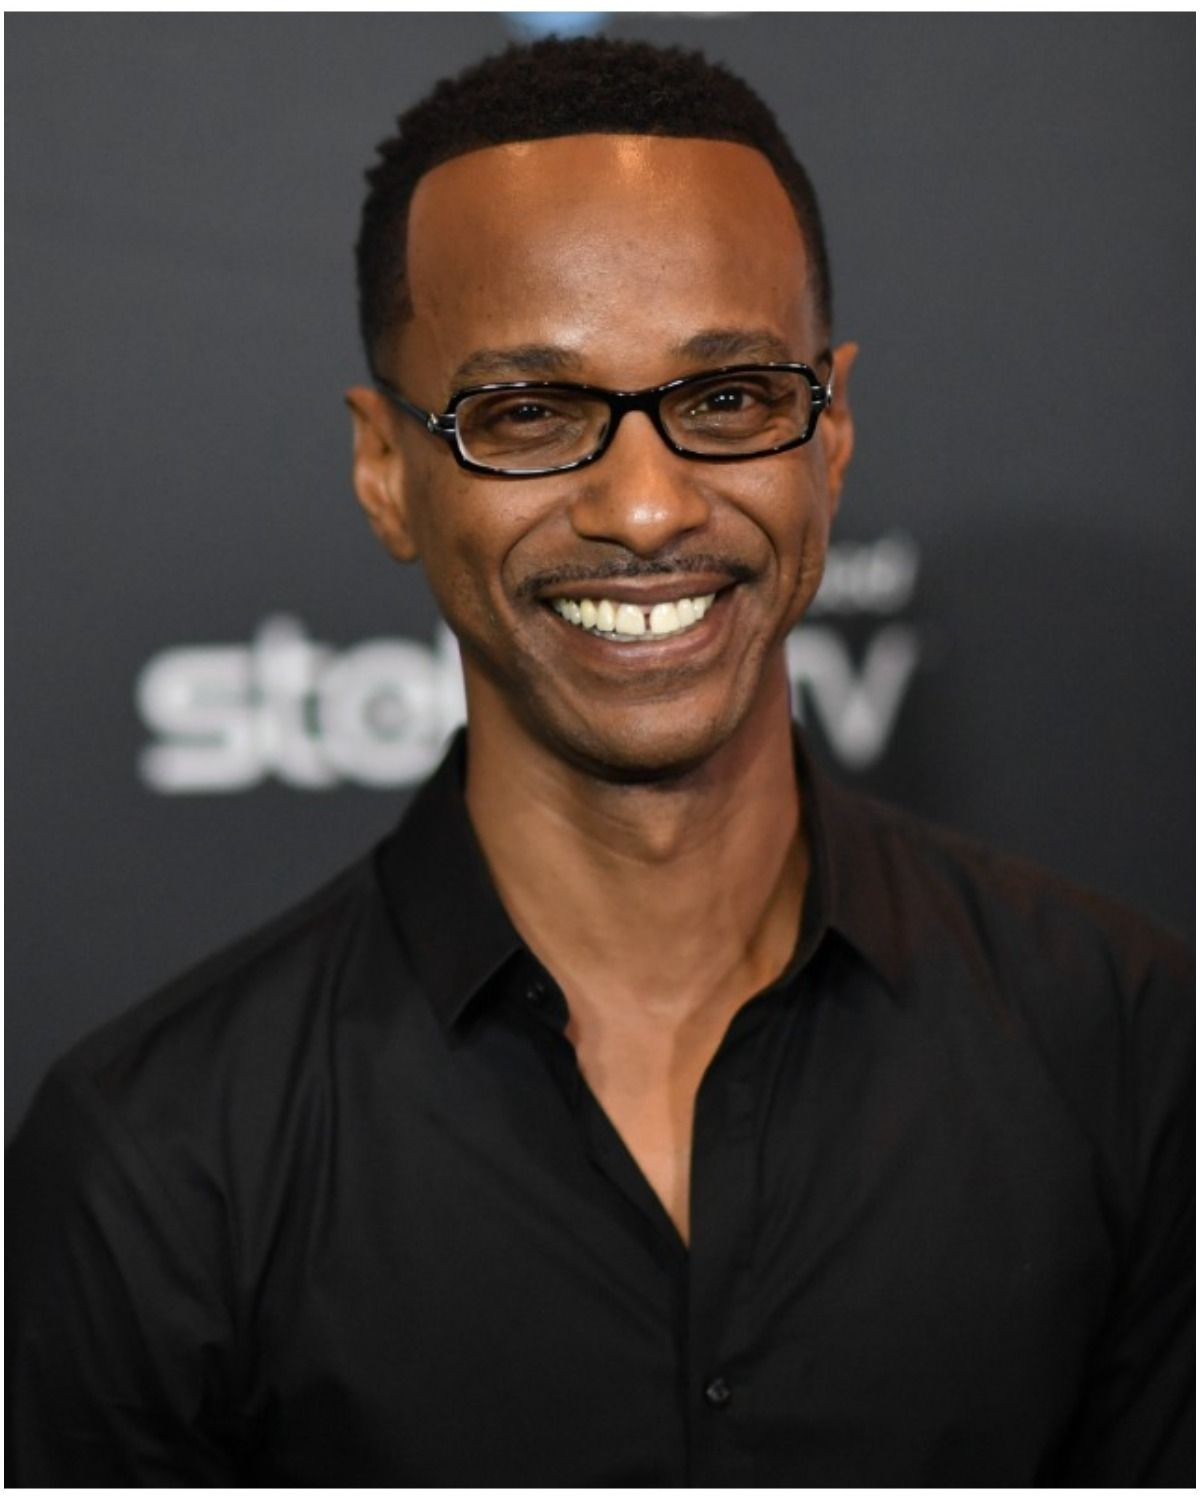 what is the net worth of Tevin Campbell